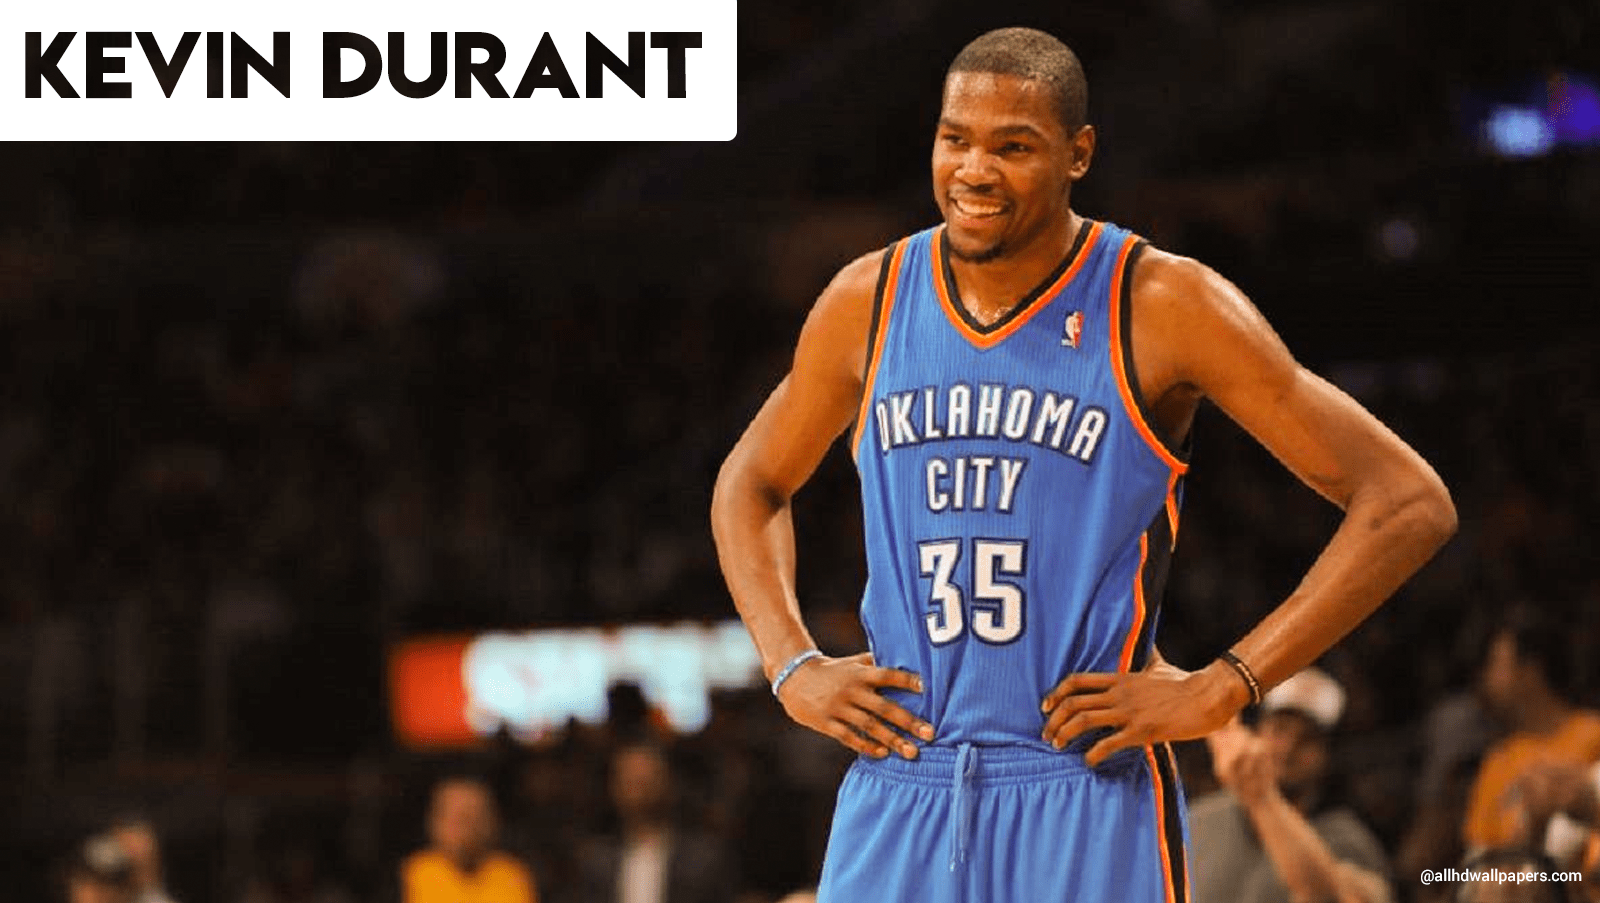 Basketball Kevin Durant Wallpapers Warriors Wallpaper: 16+ Kevin Durant Wallpaper 2018